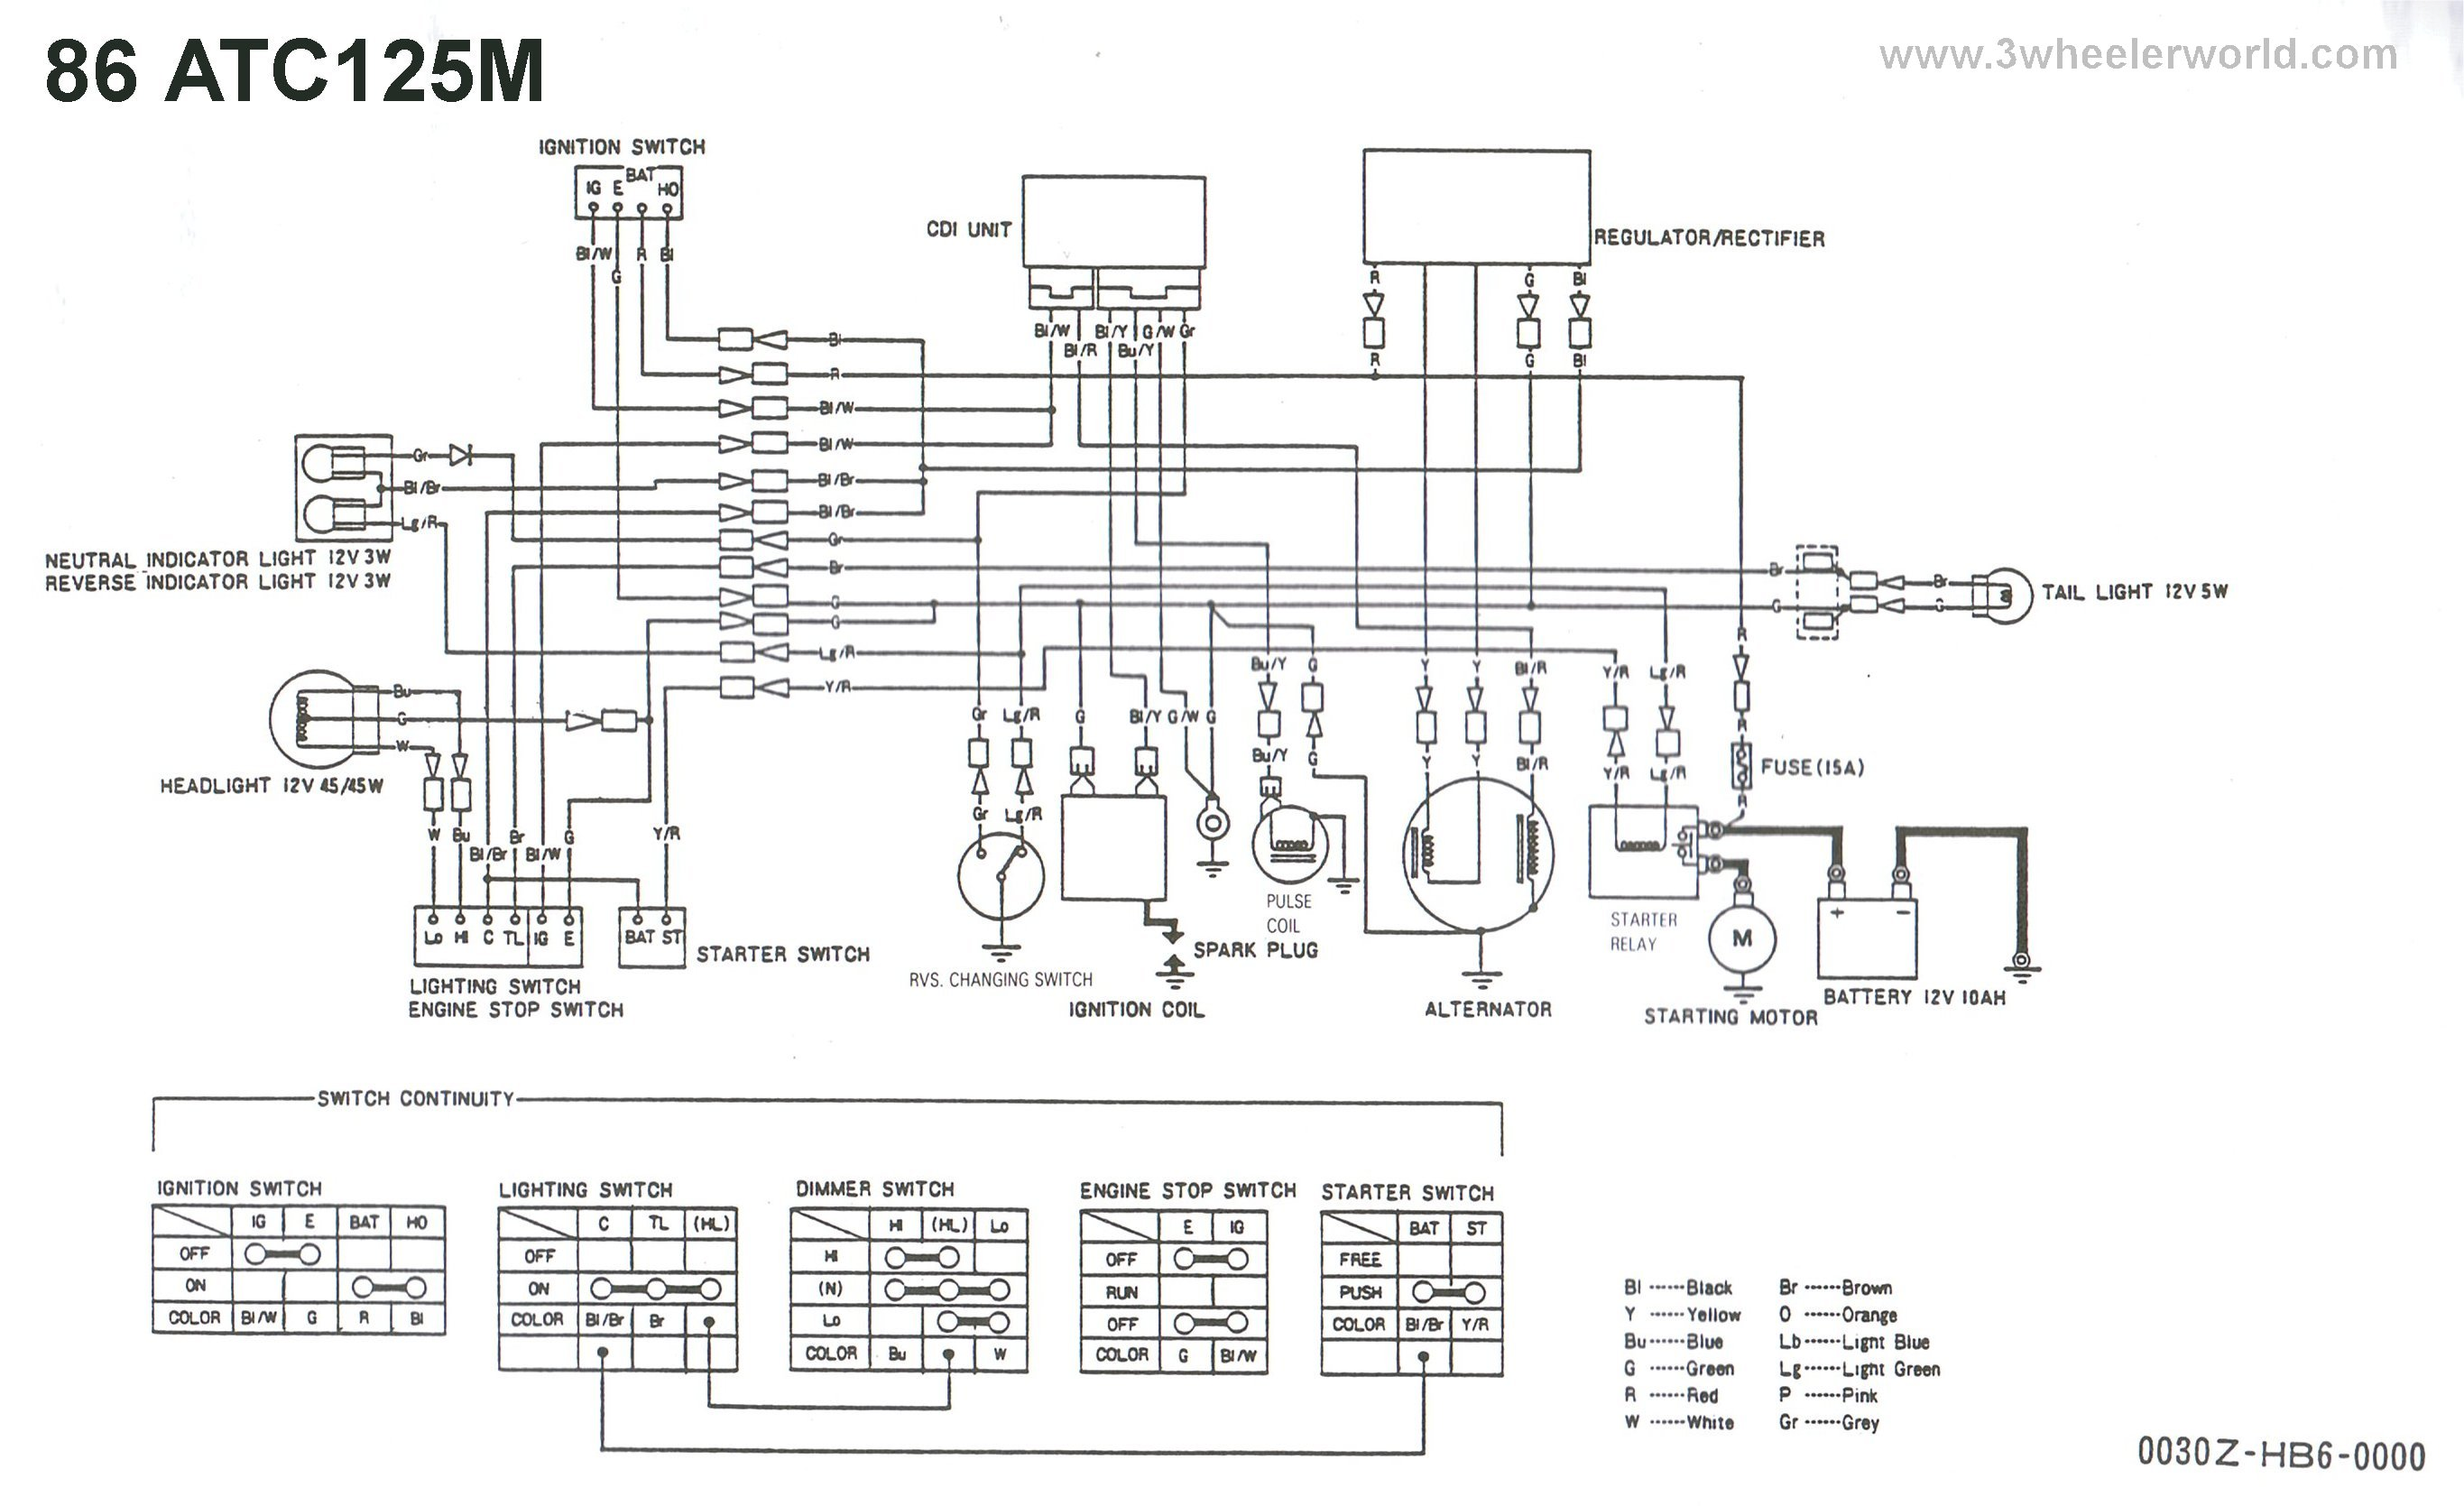 1985 Atc 125m Wiring Diagram Another Blog About Honda Elite 3 Wheeler World Tech Help Diagrams Rh 3wheelerworld Com